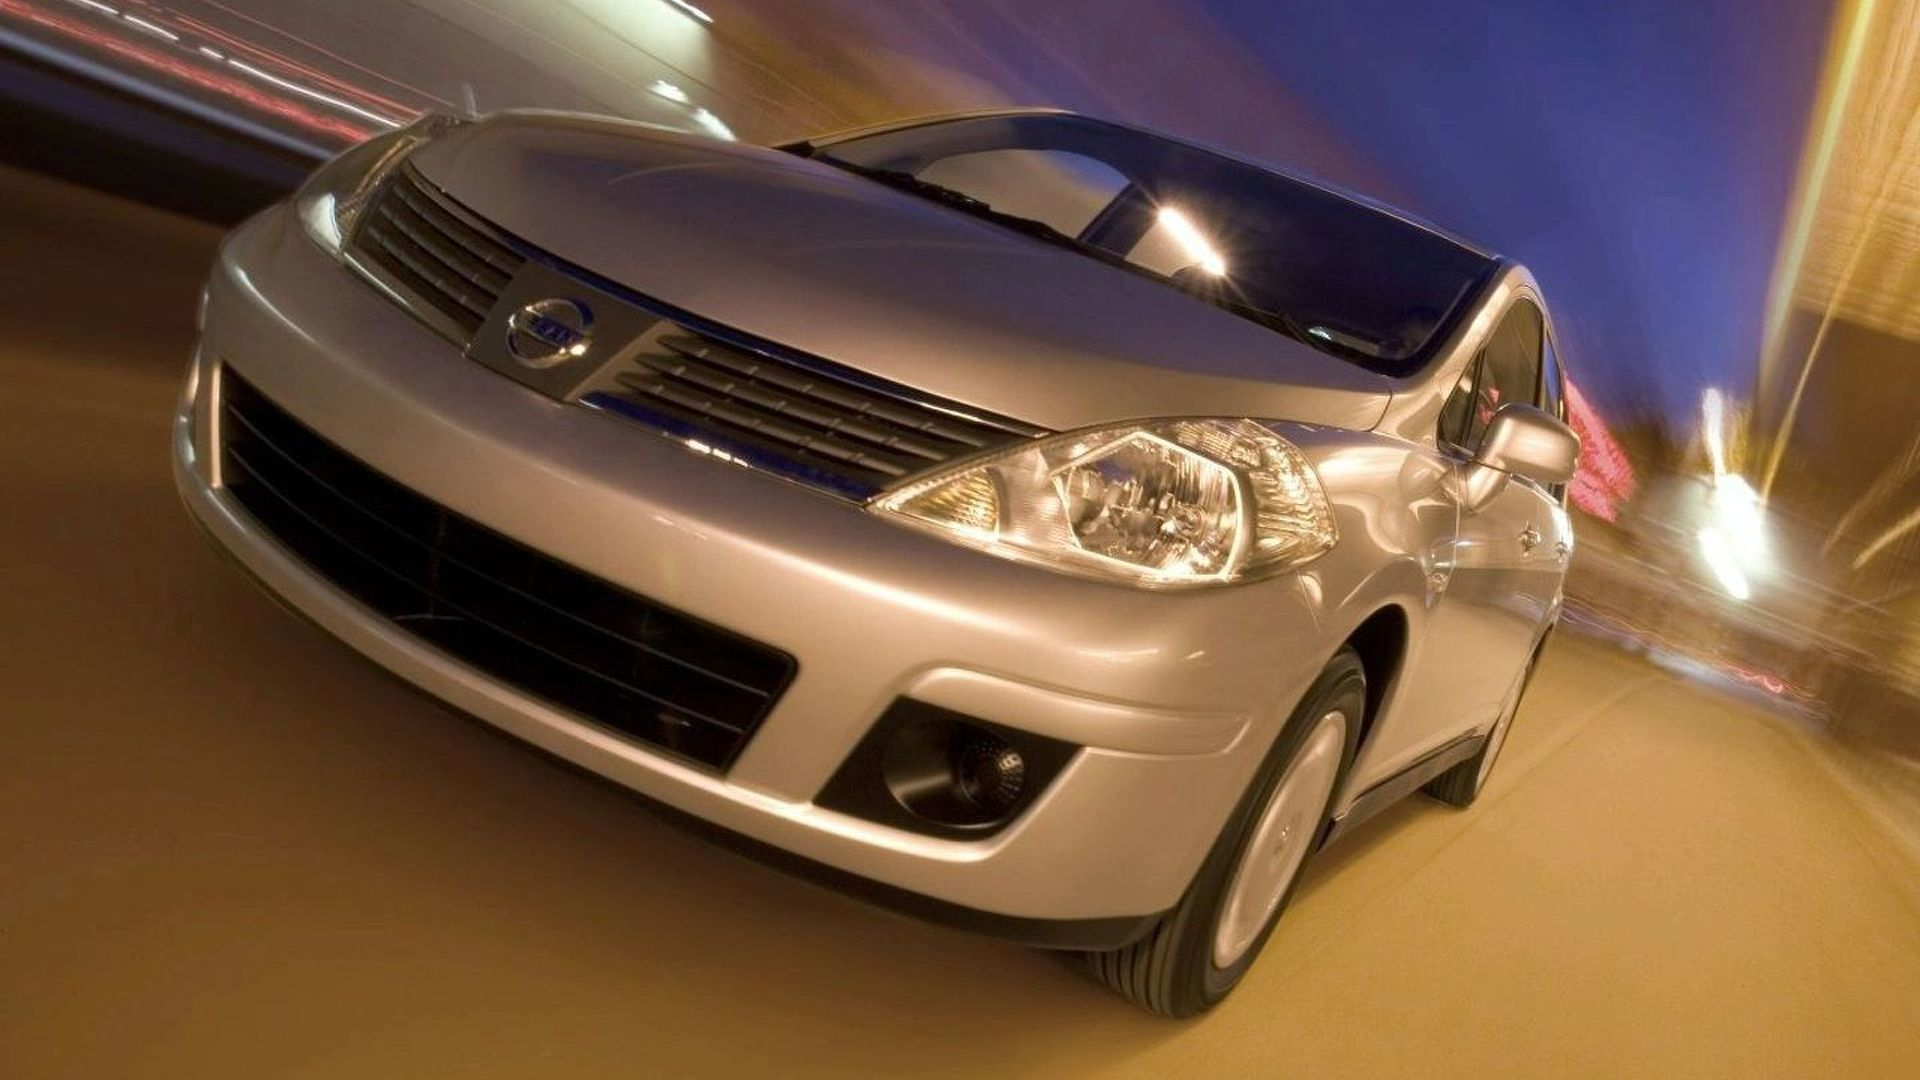 Nissan, Ford, Chrysler lead U.S. sales gain of 20% in April